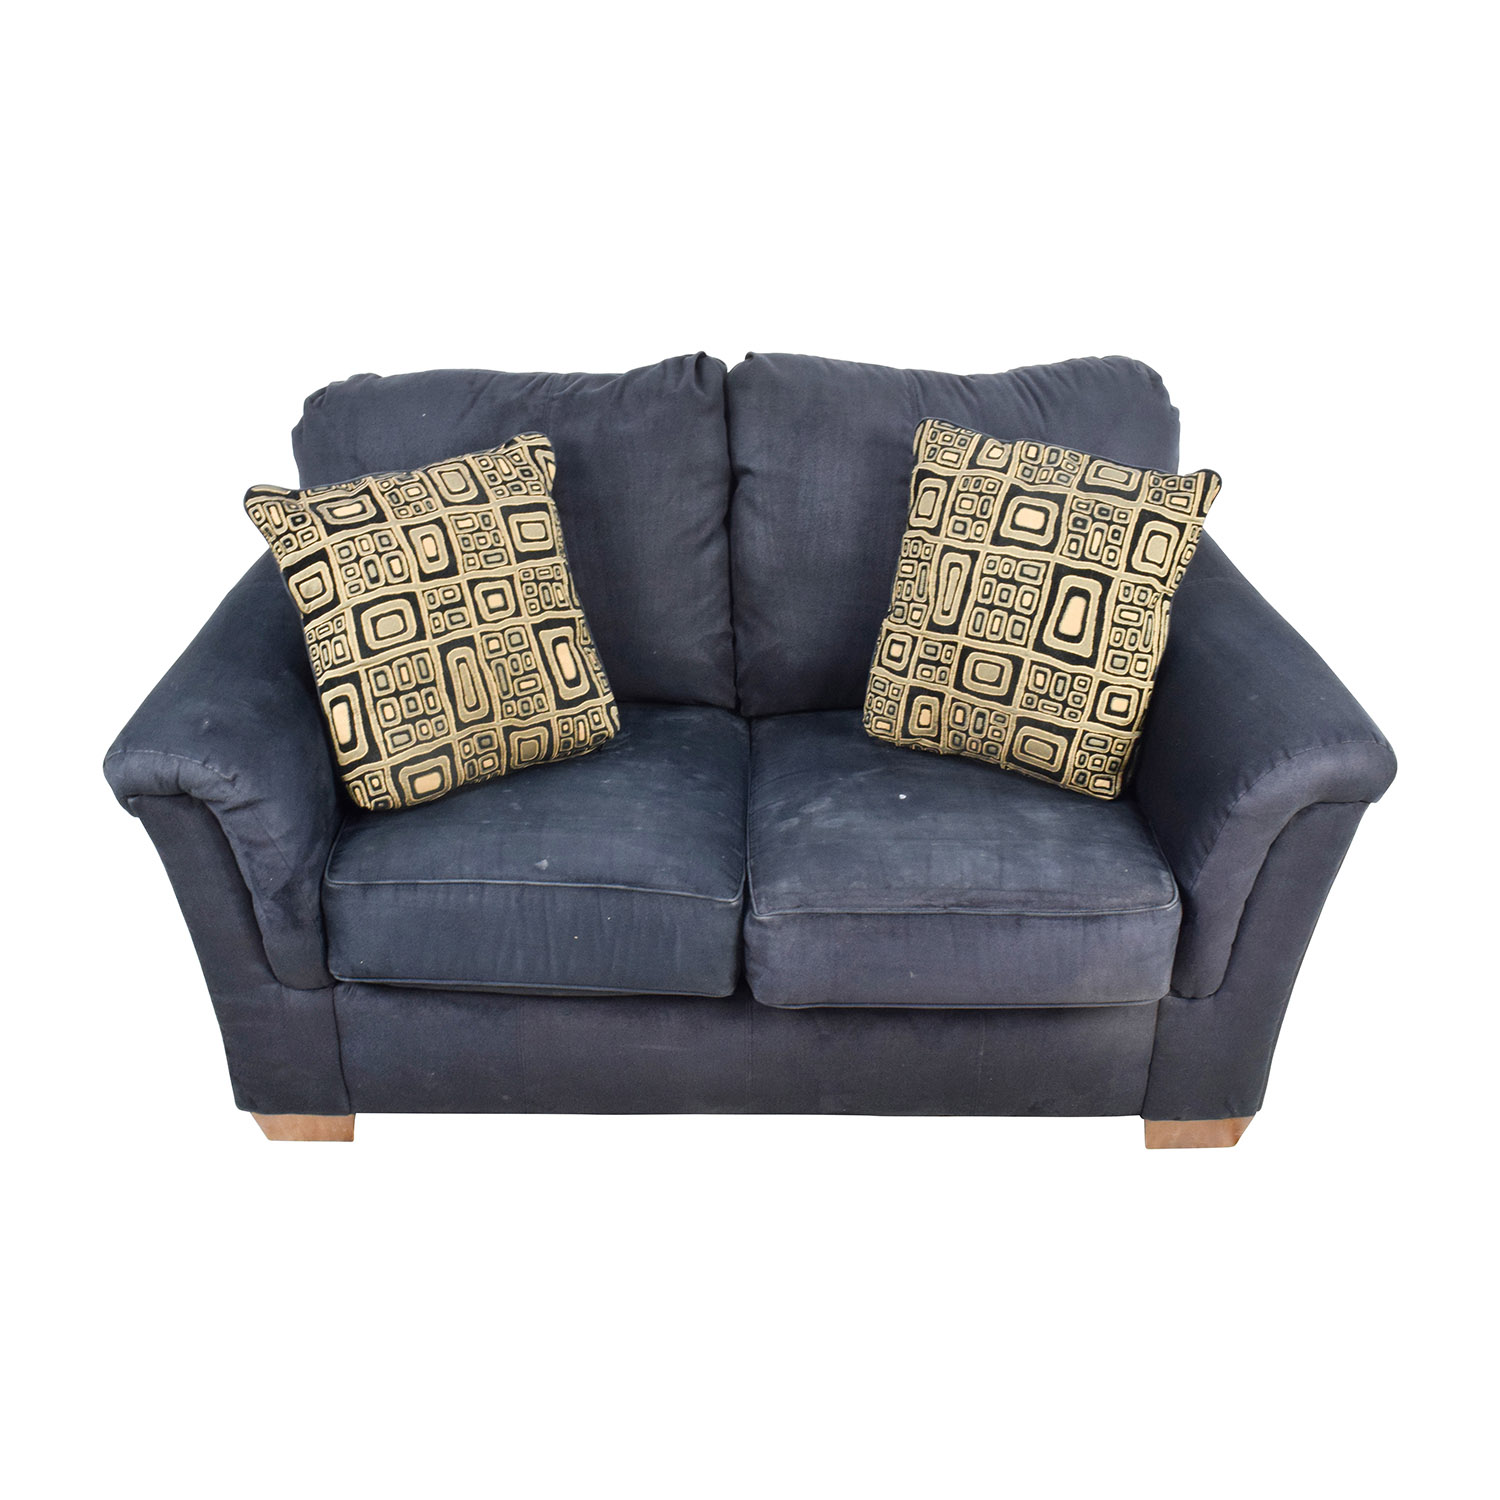 Ashley Furniture Ashley Furniture Janley Loveseat Loveseats